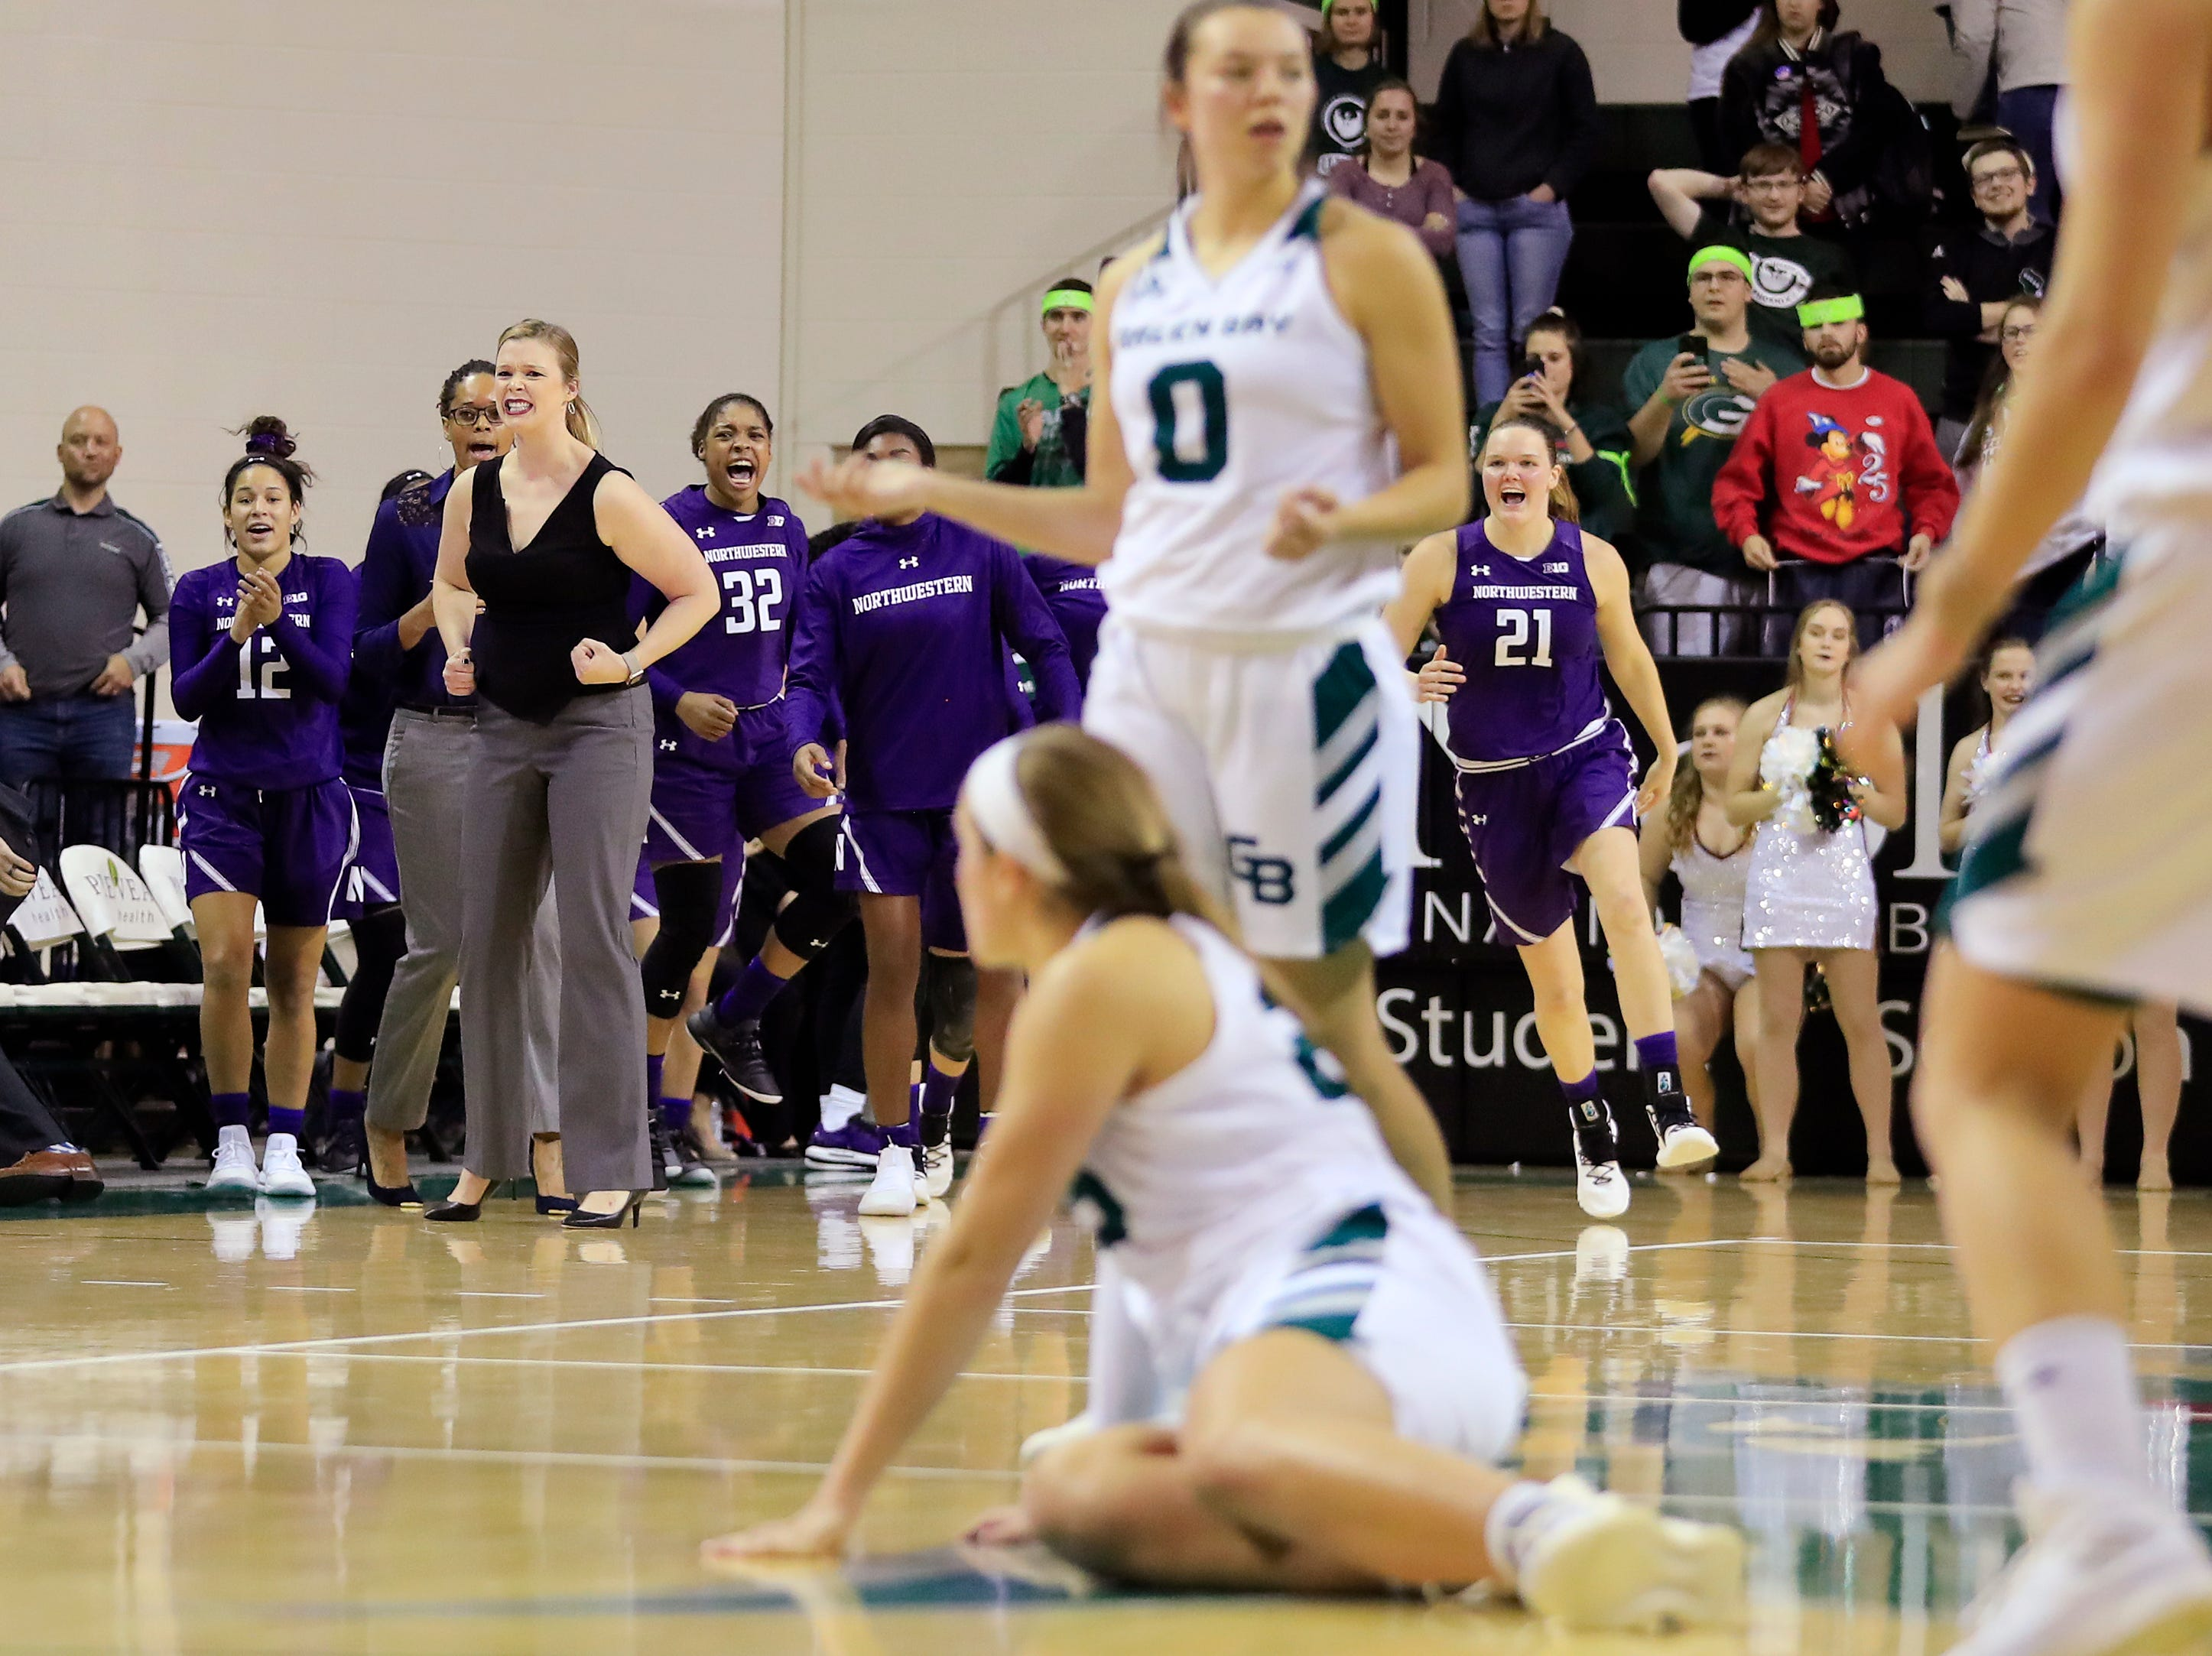 Northwestern Wildcats players react as they defeat the Green Bay Phoenix in a women's NCAA basketball game at the Kress Center on Tuesday, November 6, 2018 in Green Bay, Wis.